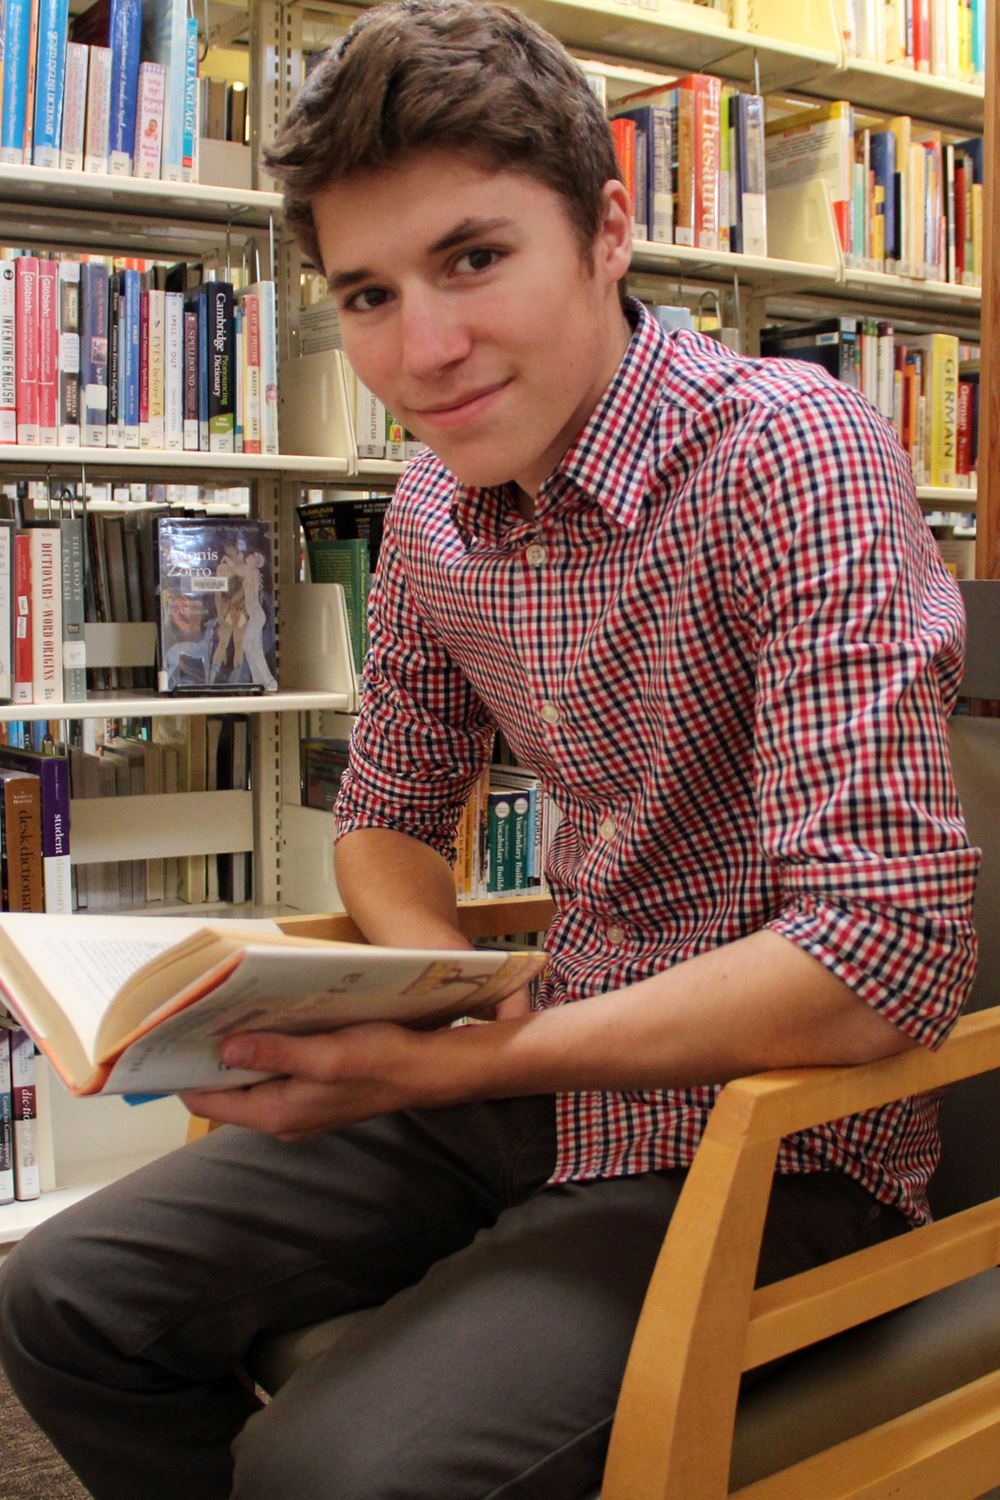 Photo of a young man smiling and holding a book in a chair inside a library.